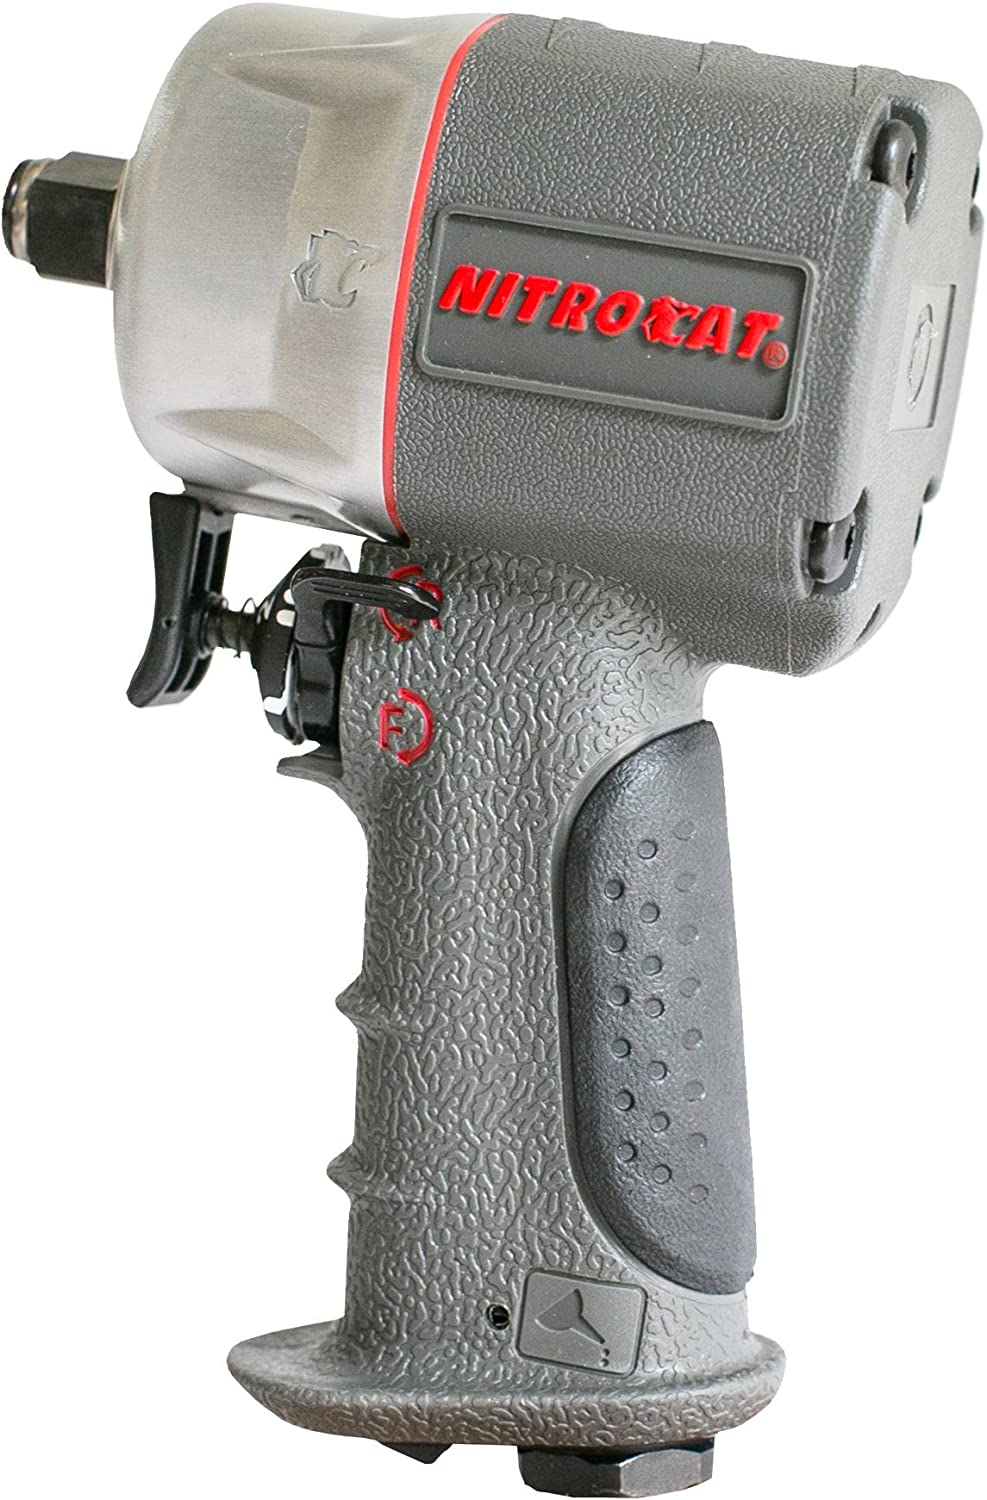 AIRCAT 1056-XL 1/2-Inch Compact Composite Impact Wrench